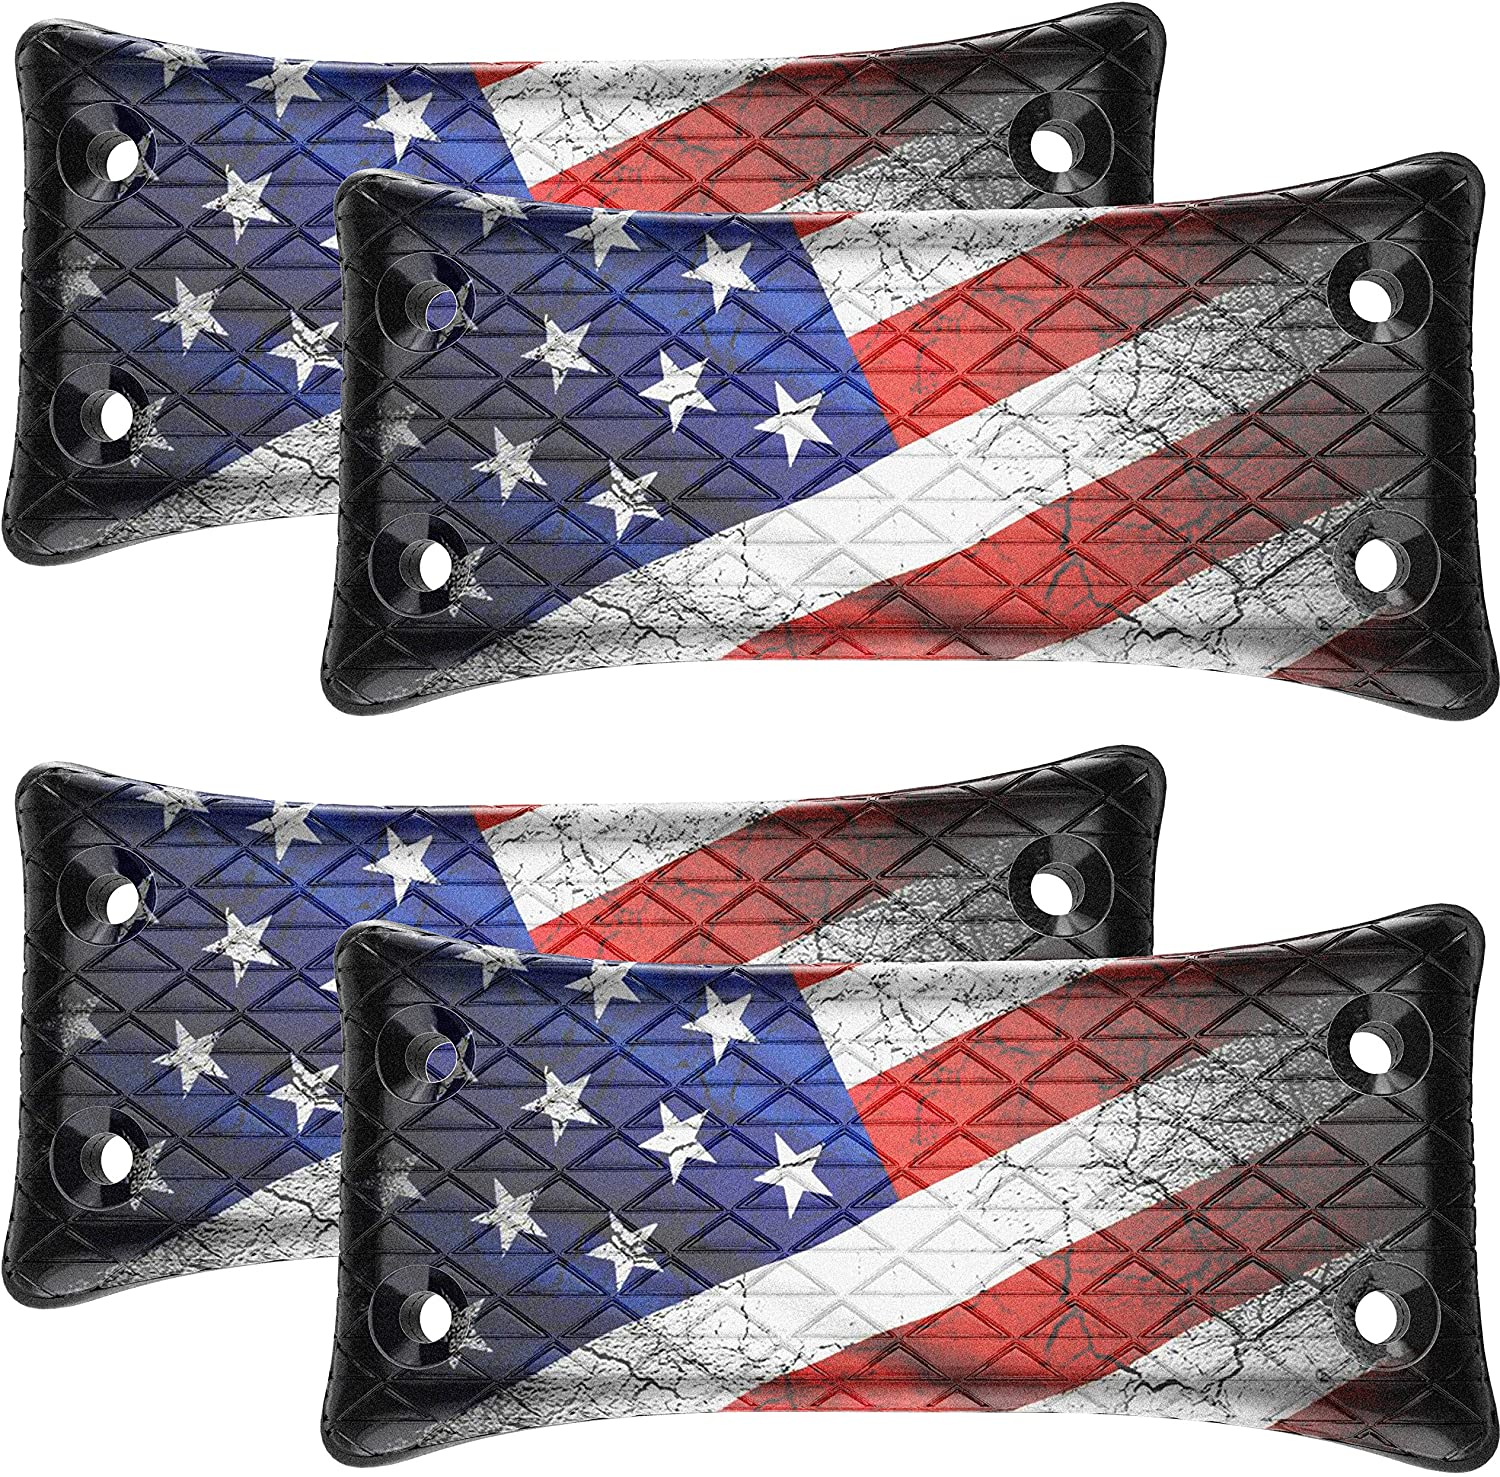 4-Pack Gun Magnet Mount , U.S. flag Holder, 50lbs Rated w/ HQ Rubber Coated, Fits Handguns,Airguns,Rifle and Pistol, Concealed car Gun Holster for Vehicle and Indoor, Car,Wall,Bedside and Office